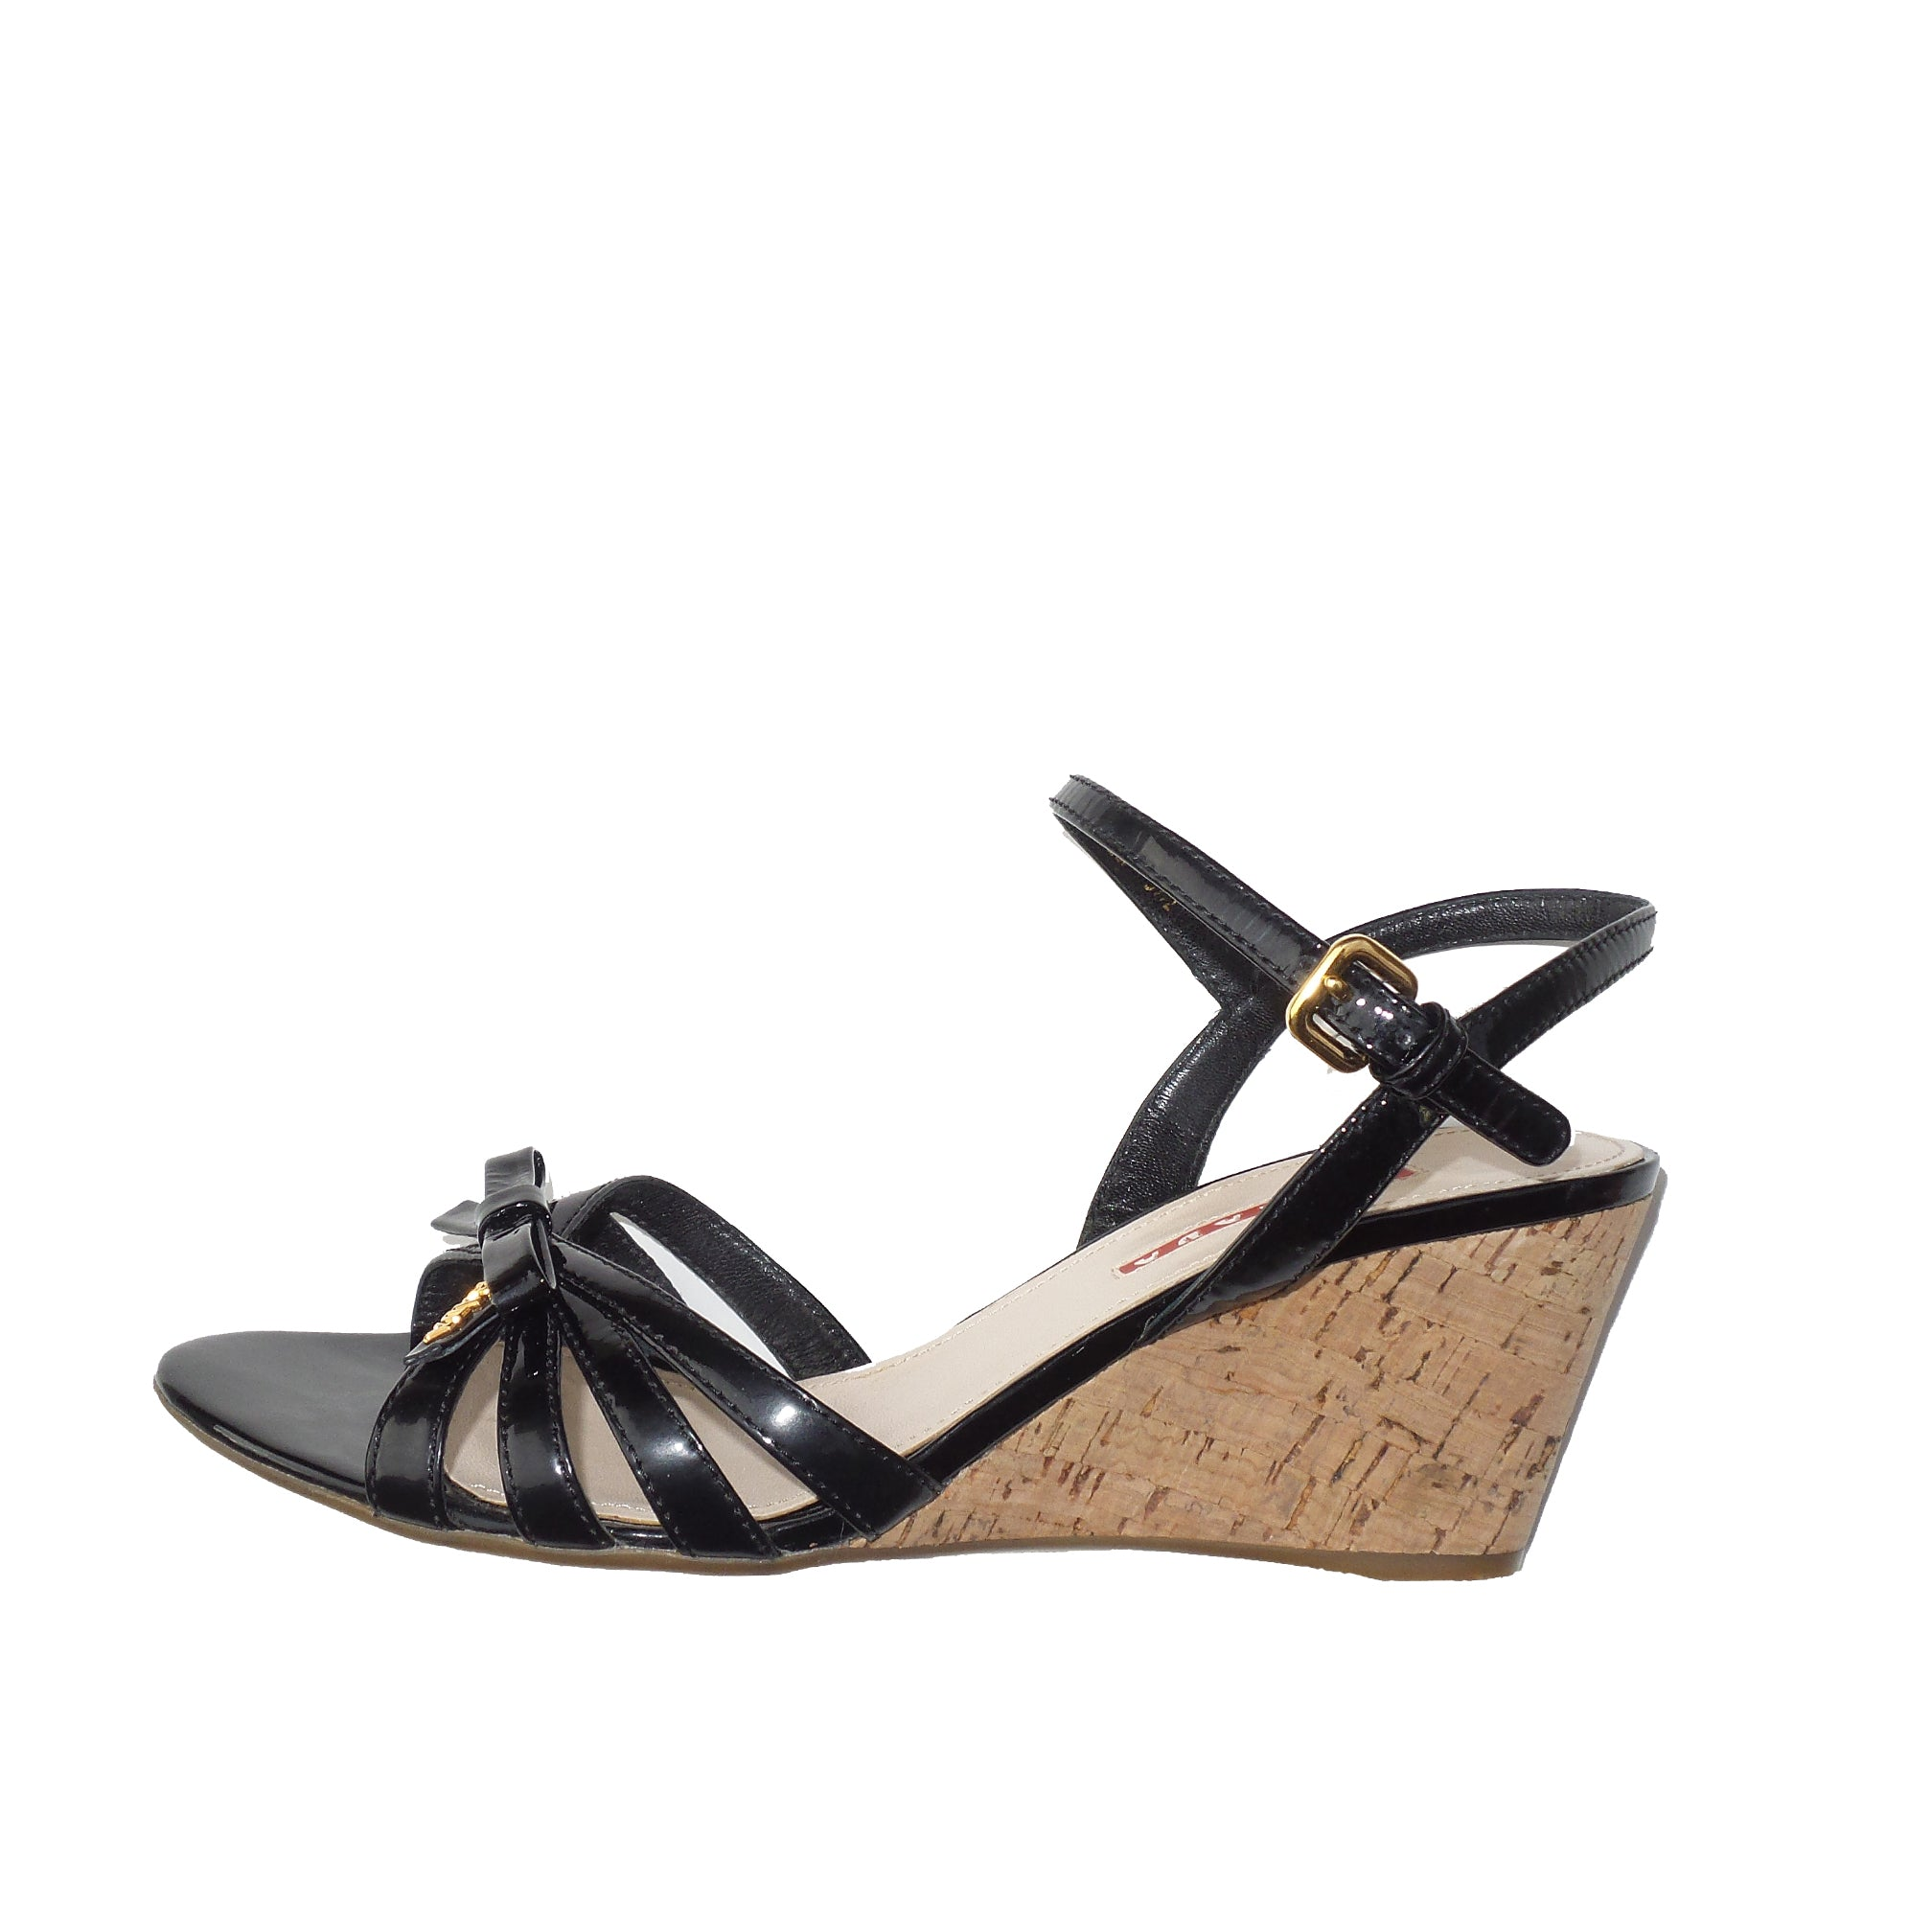 f5e2ce6ea998 PRADA Sport Black Patent Leather Strappy Bow Cork Wedge Heel Sandals 3 –  Encore Resale.com